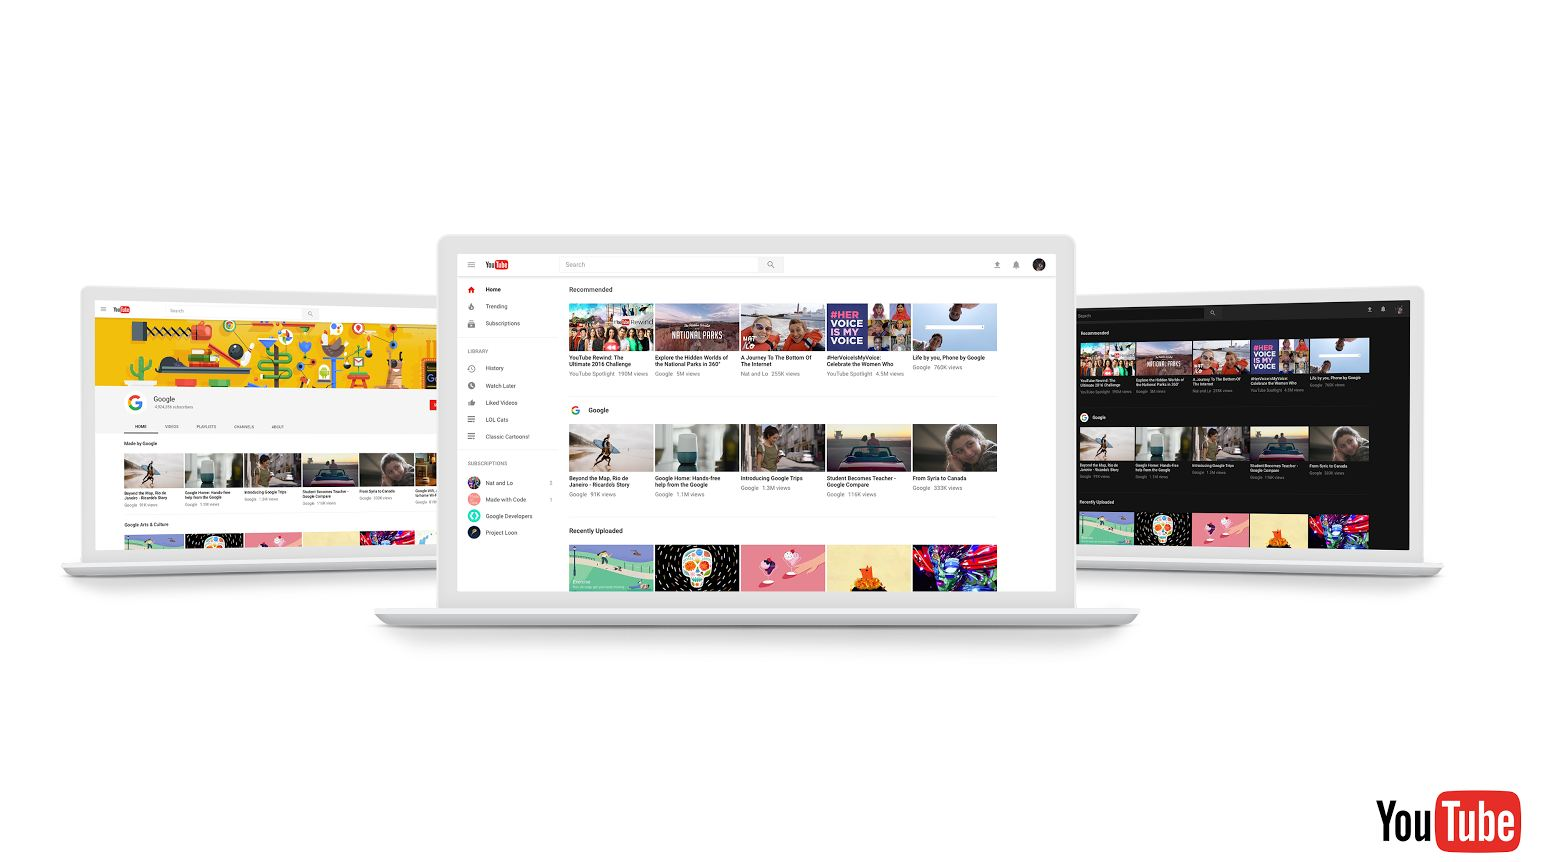 YouTube reveals new Material Design look and feel desktop site